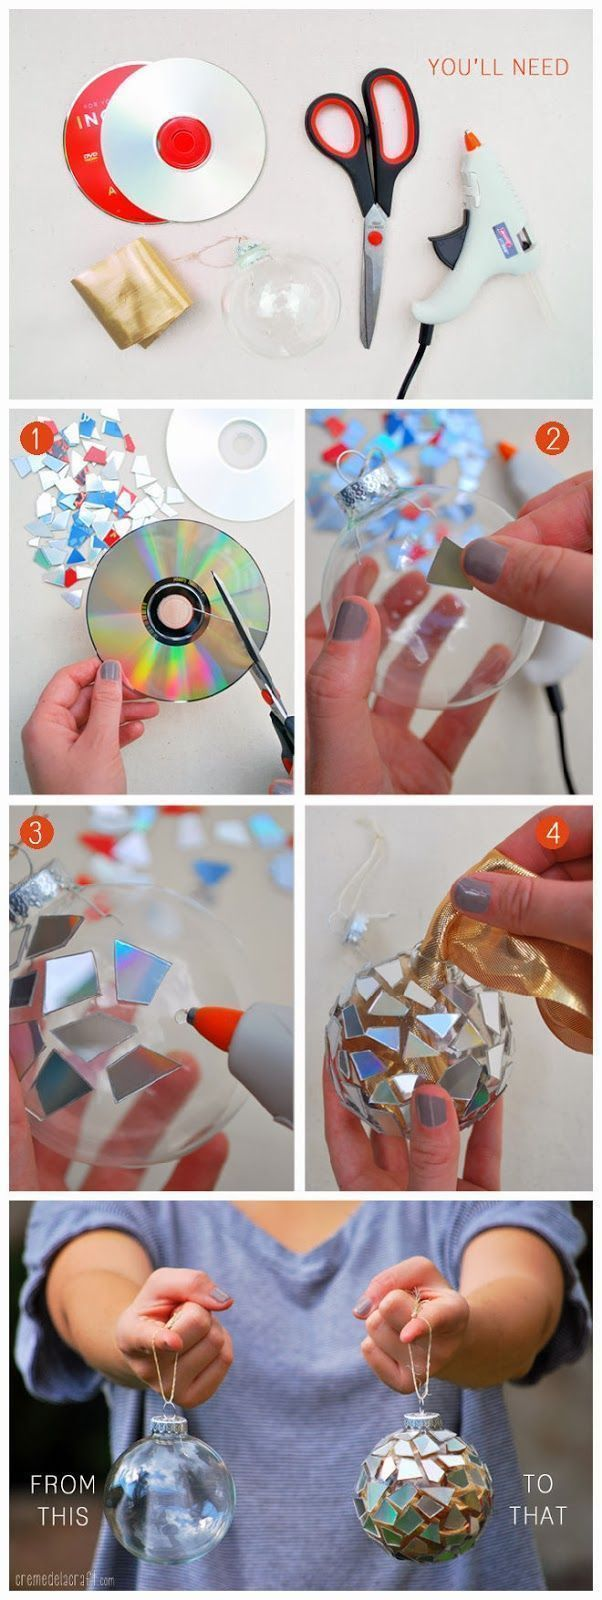 Recycled CD Mosaic Ornaments #recycledcd Recycled CD Mosaic Ornaments #recycledcd Recycled CD Mosaic Ornaments #recycledcd Recycled CD Mosaic Ornaments #recycledcd Recycled CD Mosaic Ornaments #recycledcd Recycled CD Mosaic Ornaments #recycledcd Recycled CD Mosaic Ornaments #recycledcd Recycled CD Mosaic Ornaments #recycledcd Recycled CD Mosaic Ornaments #recycledcd Recycled CD Mosaic Ornaments #recycledcd Recycled CD Mosaic Ornaments #recycledcd Recycled CD Mosaic Ornaments #recycledcd Recycled #recycledcd